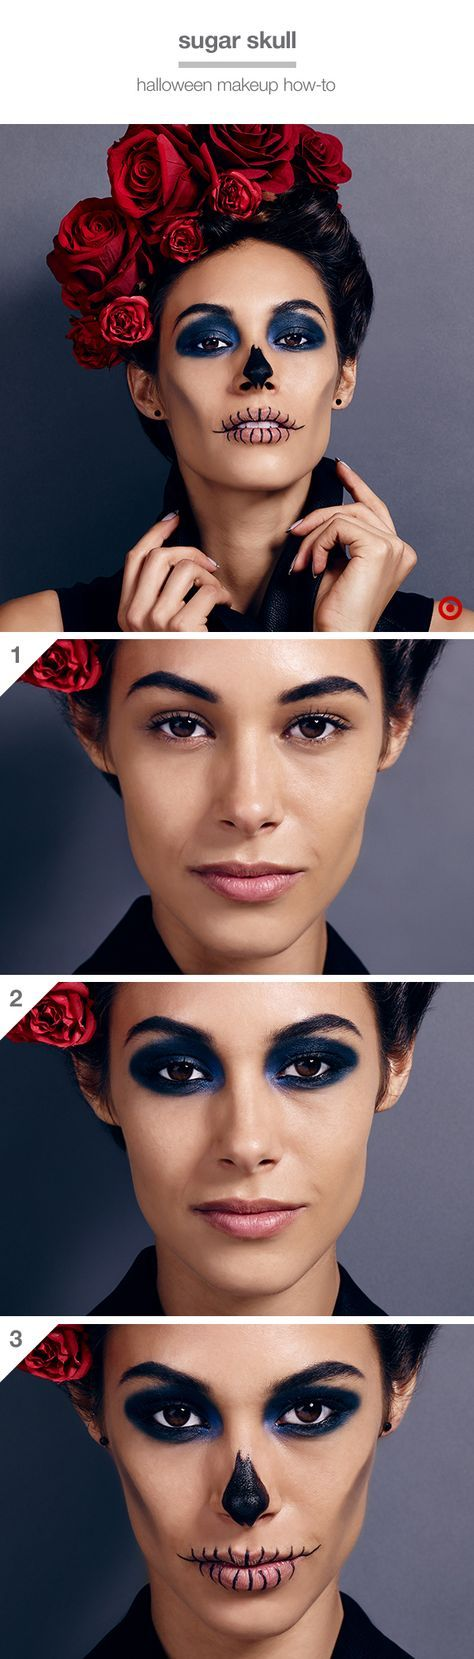 Go all-out with a killer (but easy) Halloween look: 1. Give brows a fierce arch with dark eyebrow wax. 2. Apply dark navy shadow on eyelids, creases and under eyes for a deep-set, dramatic look. Line waterlines with black liner & apply mascara. 3. Apply concealer on lips. Keeping lips closed, draw vertical lines across both lips with black gel liner. Then smudge black costume makeup along the cheekbones and down toward the chin and paint the tip of the nose. Dying to try it? Shop the look.